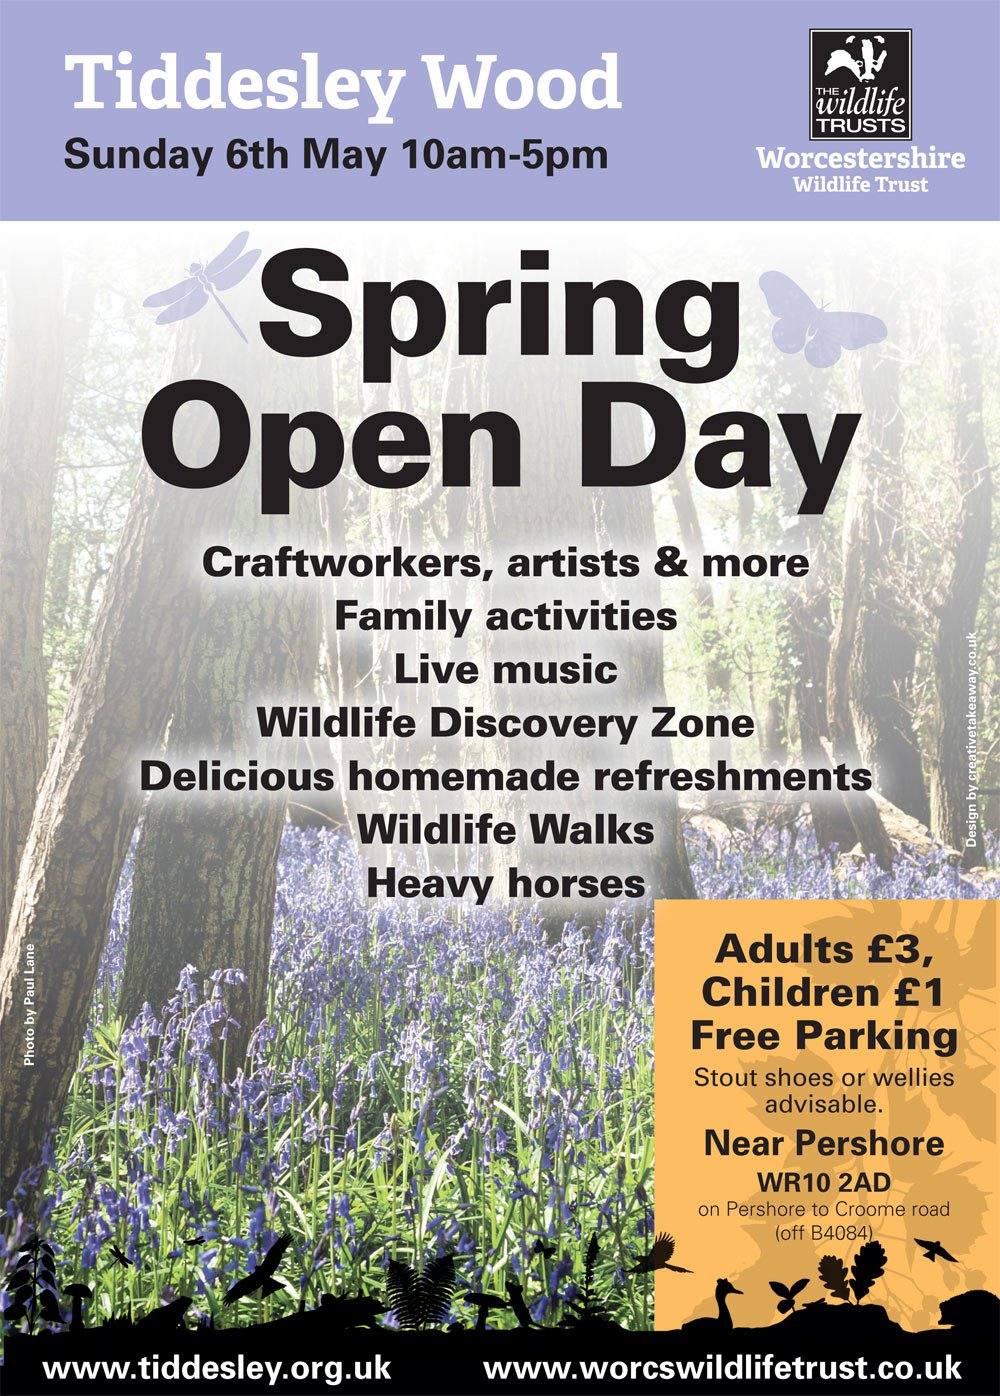 Tiddesley Wood Open Day poster - Sun 6th May